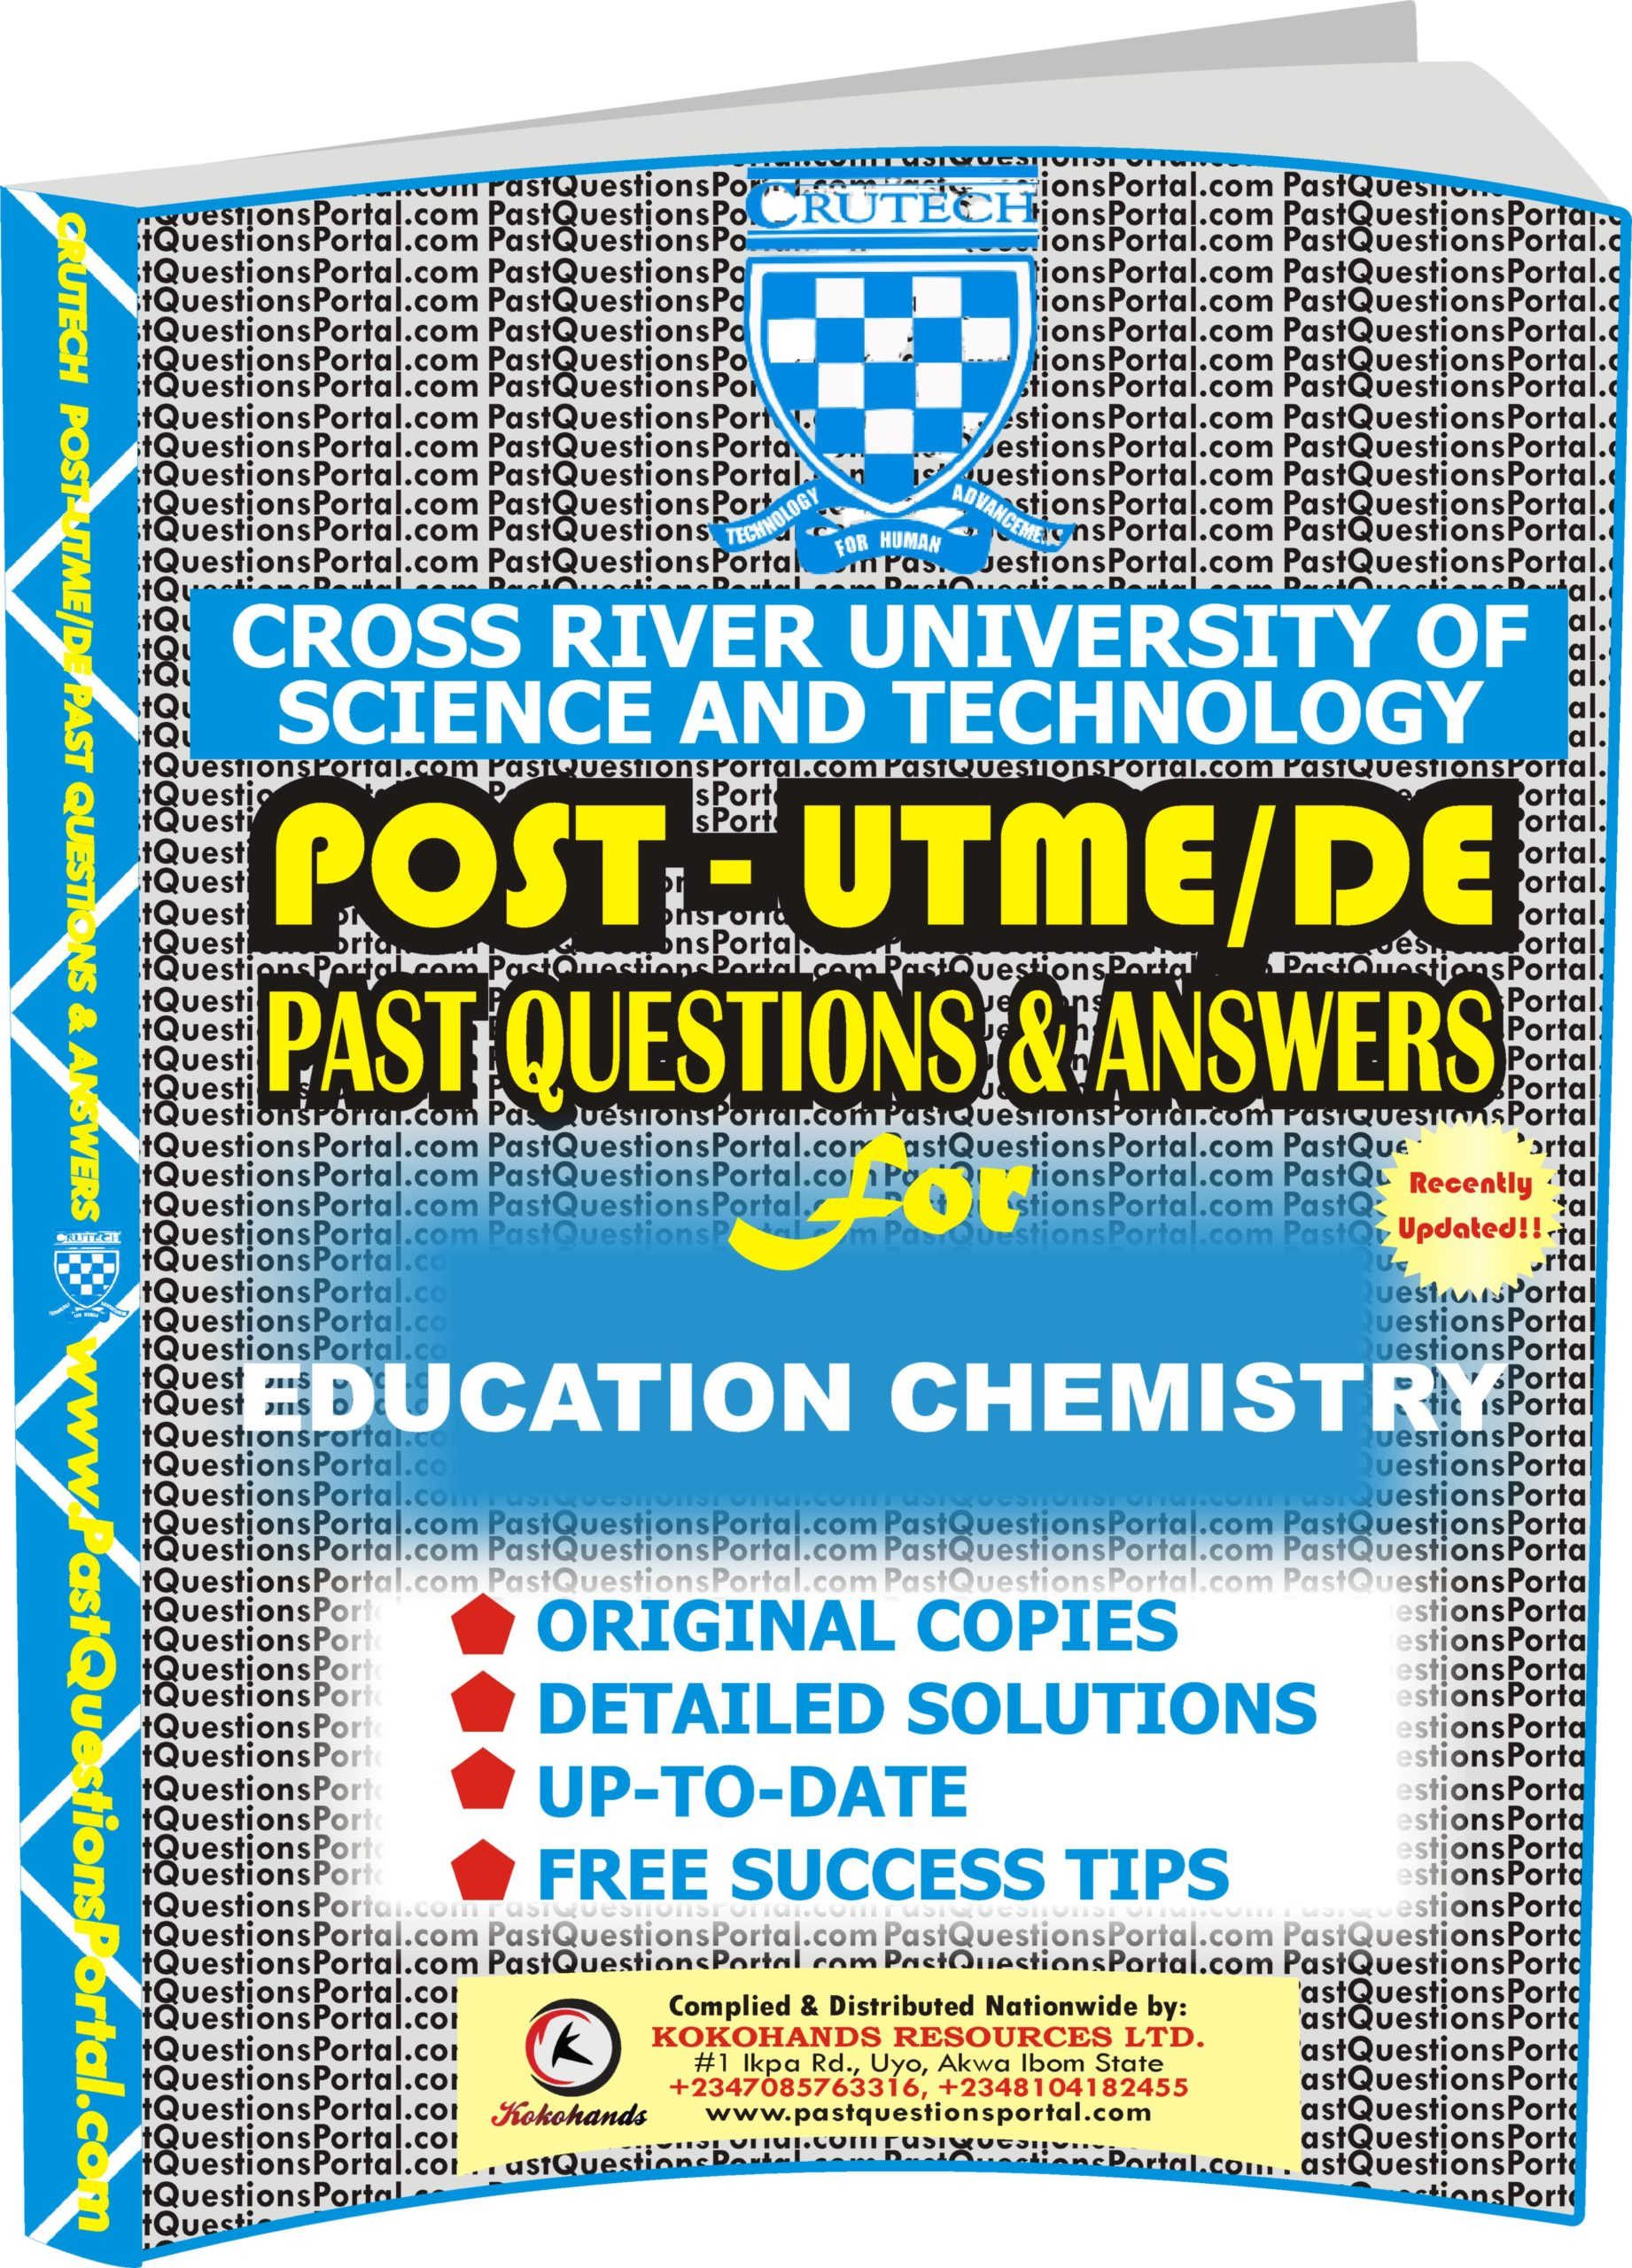 CRUTECH Post UTME Past Questions for EDUCATION CHEMISTRY